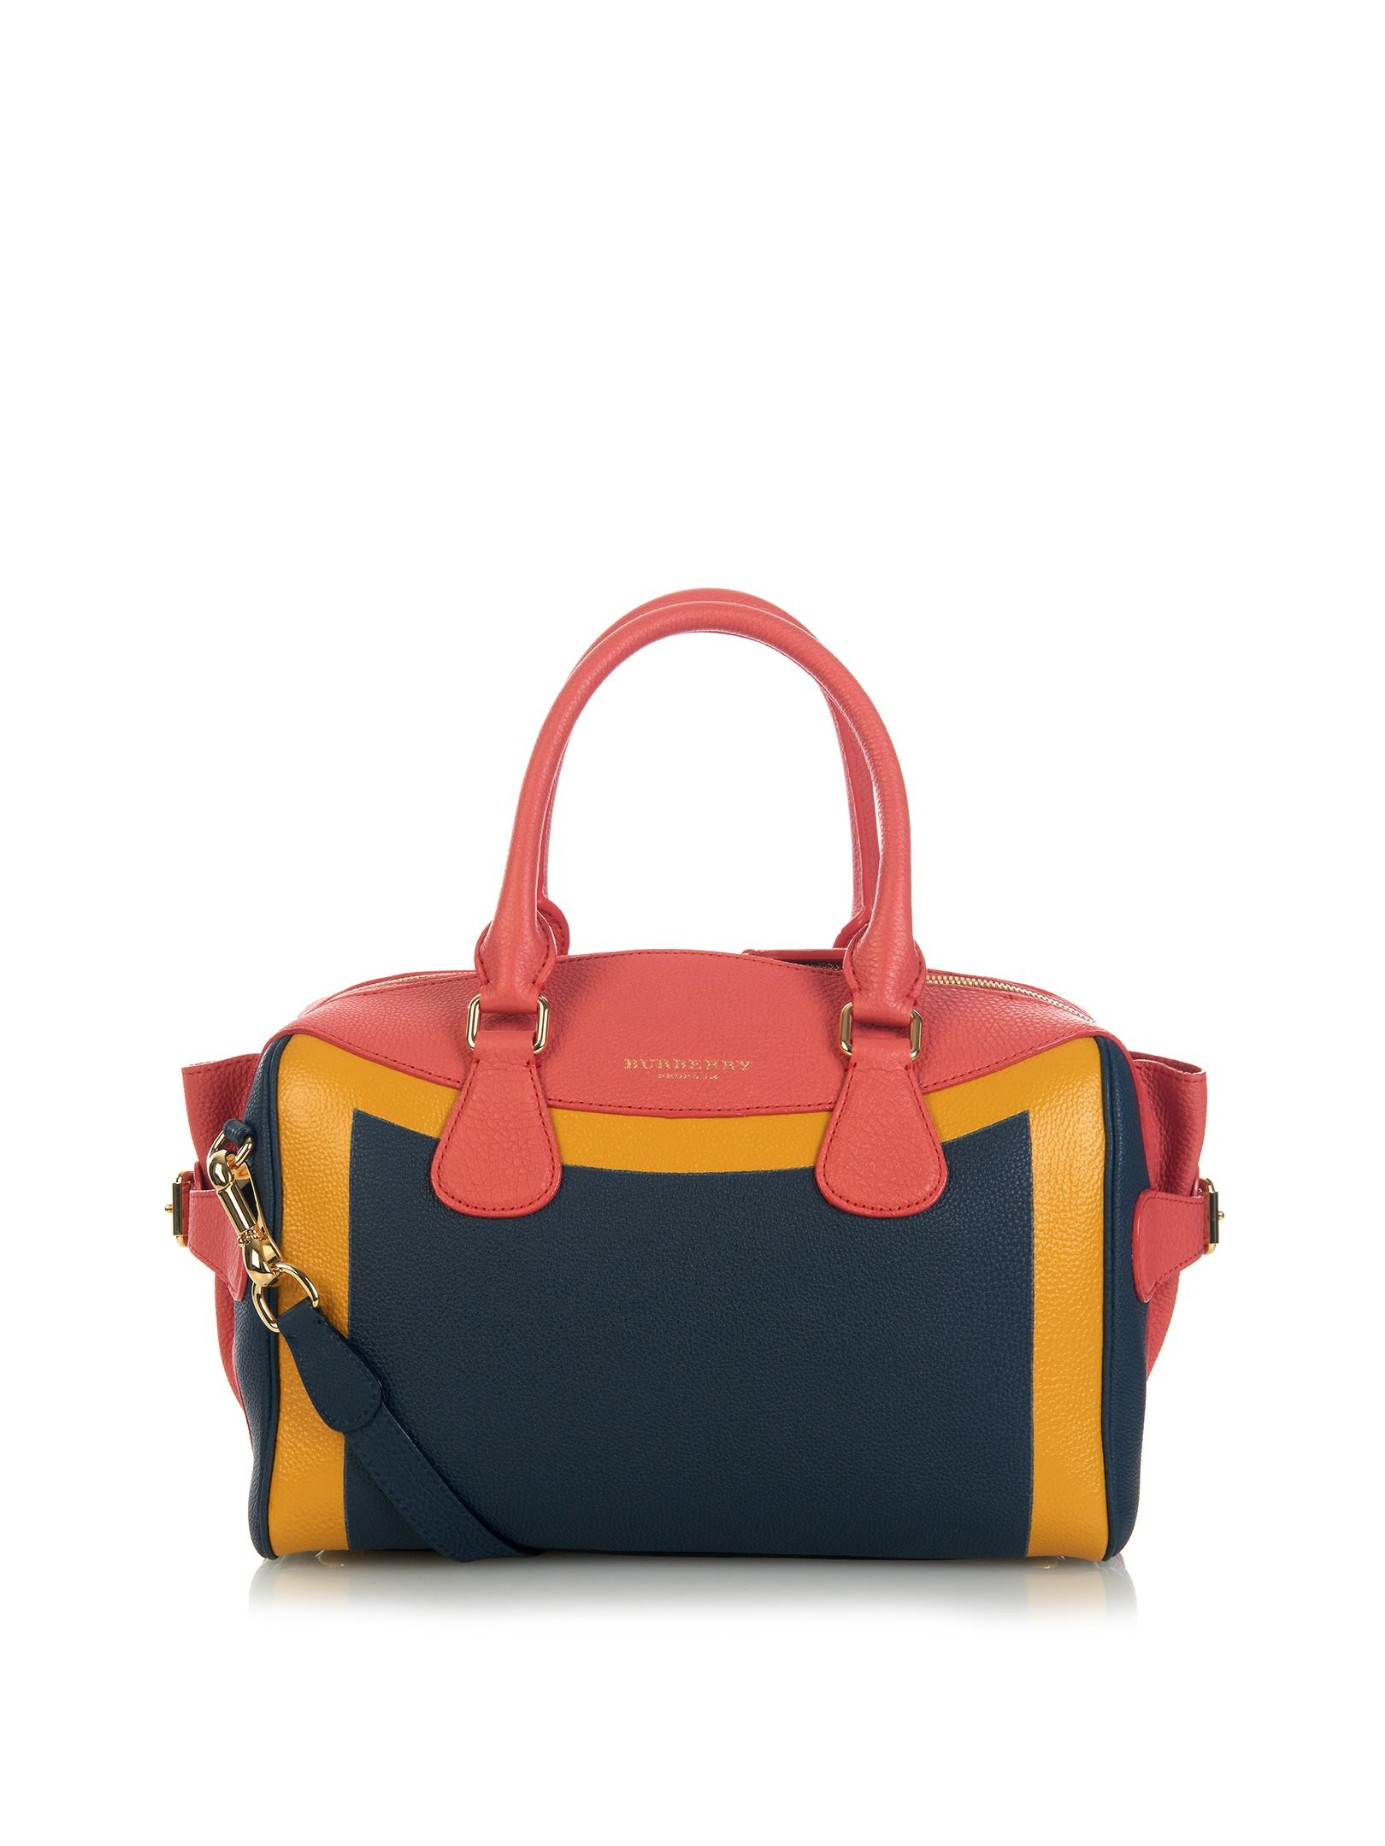 Lyst - Burberry Prorsum Bee Hand-painted Leather Tote in Blue aca4b69d0ec7b